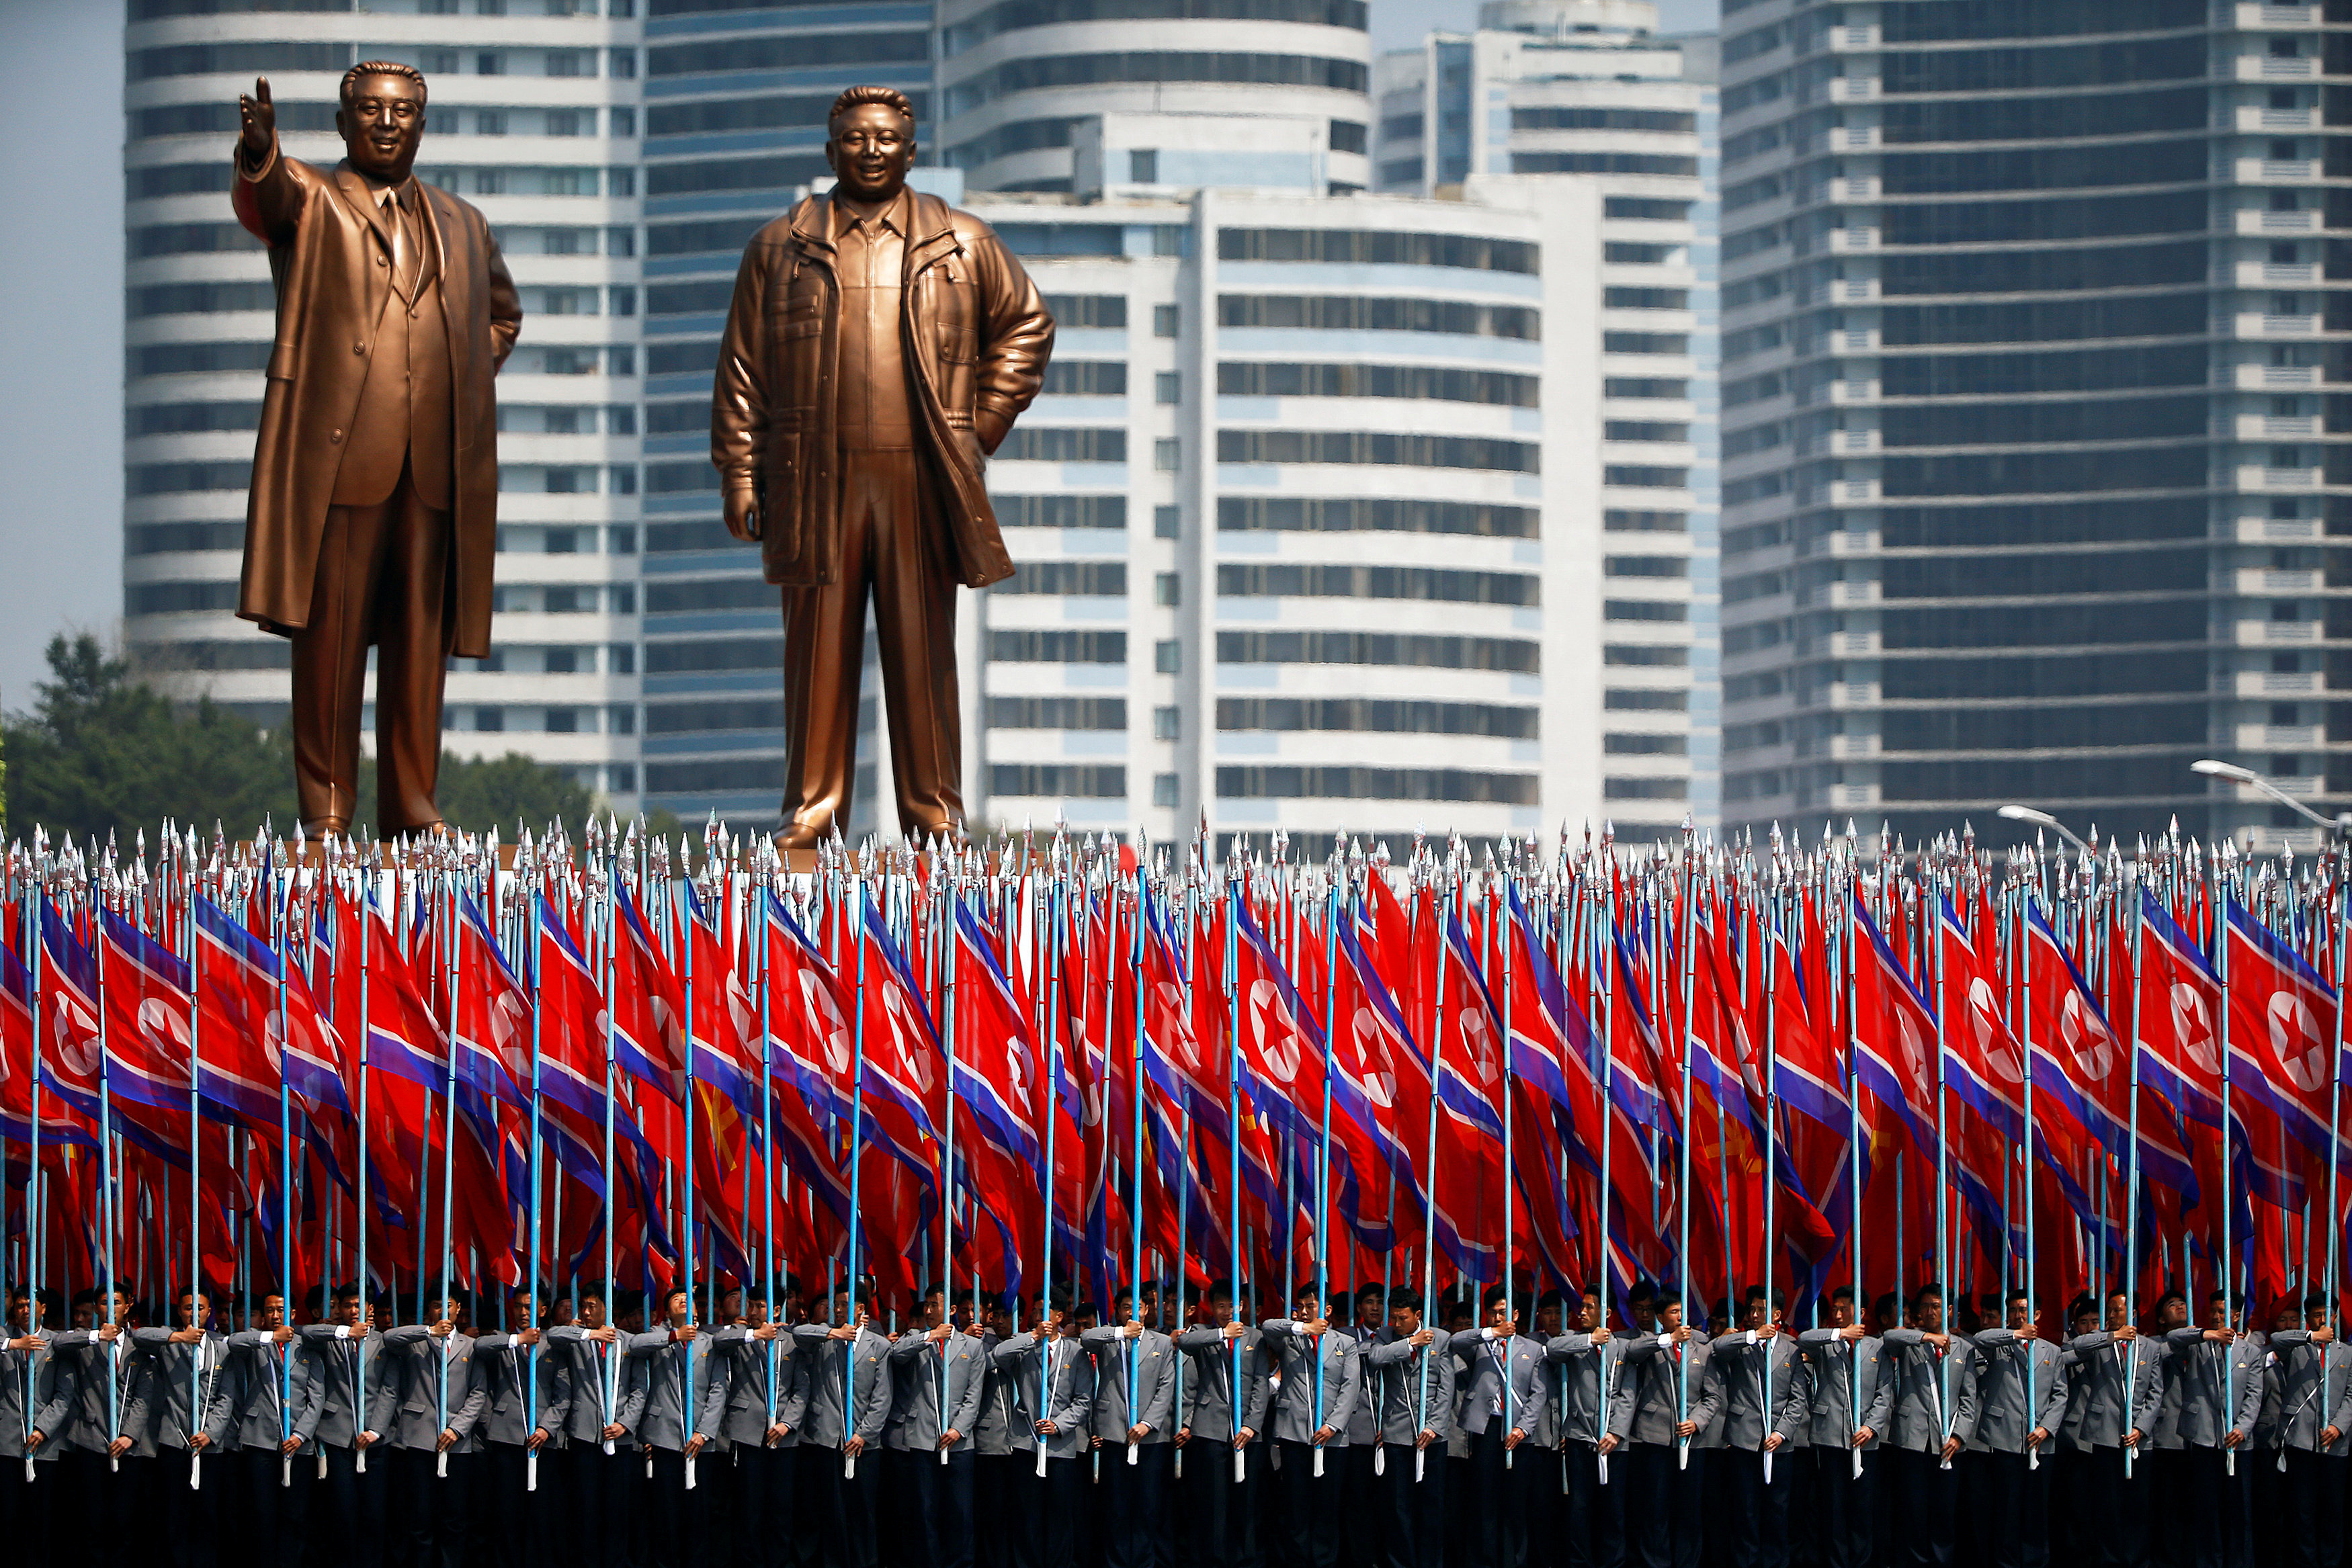 "People carry flags in front of statues of North Korea founder Kim Il Sung (L) and late leader Kim Jong Il during a military parade marking the 105th birth anniversary Kim Il Sung, in Pyongyang April 15, 2017. The men carrying flags are wearing North Korean university uniforms. The float containing the statues is often marks the start of a section of the parade led by people chosen to represent ordinary citizens, as opposed to soldiers or military equipment. Once the parade is over, and the float has completed its official function, a large white sheet is placed over each statue in order to preserve the ""Supreme Dignity"" of each figure as the float meanders its way back through the city amid normal traffic. REUTERS/Damir Sagolj SEARCH ""PARADE WID"" FOR THIS STORY. SEARCH ""WIDER IMAGE"" FOR ALL STORIES. - RTS12G64"